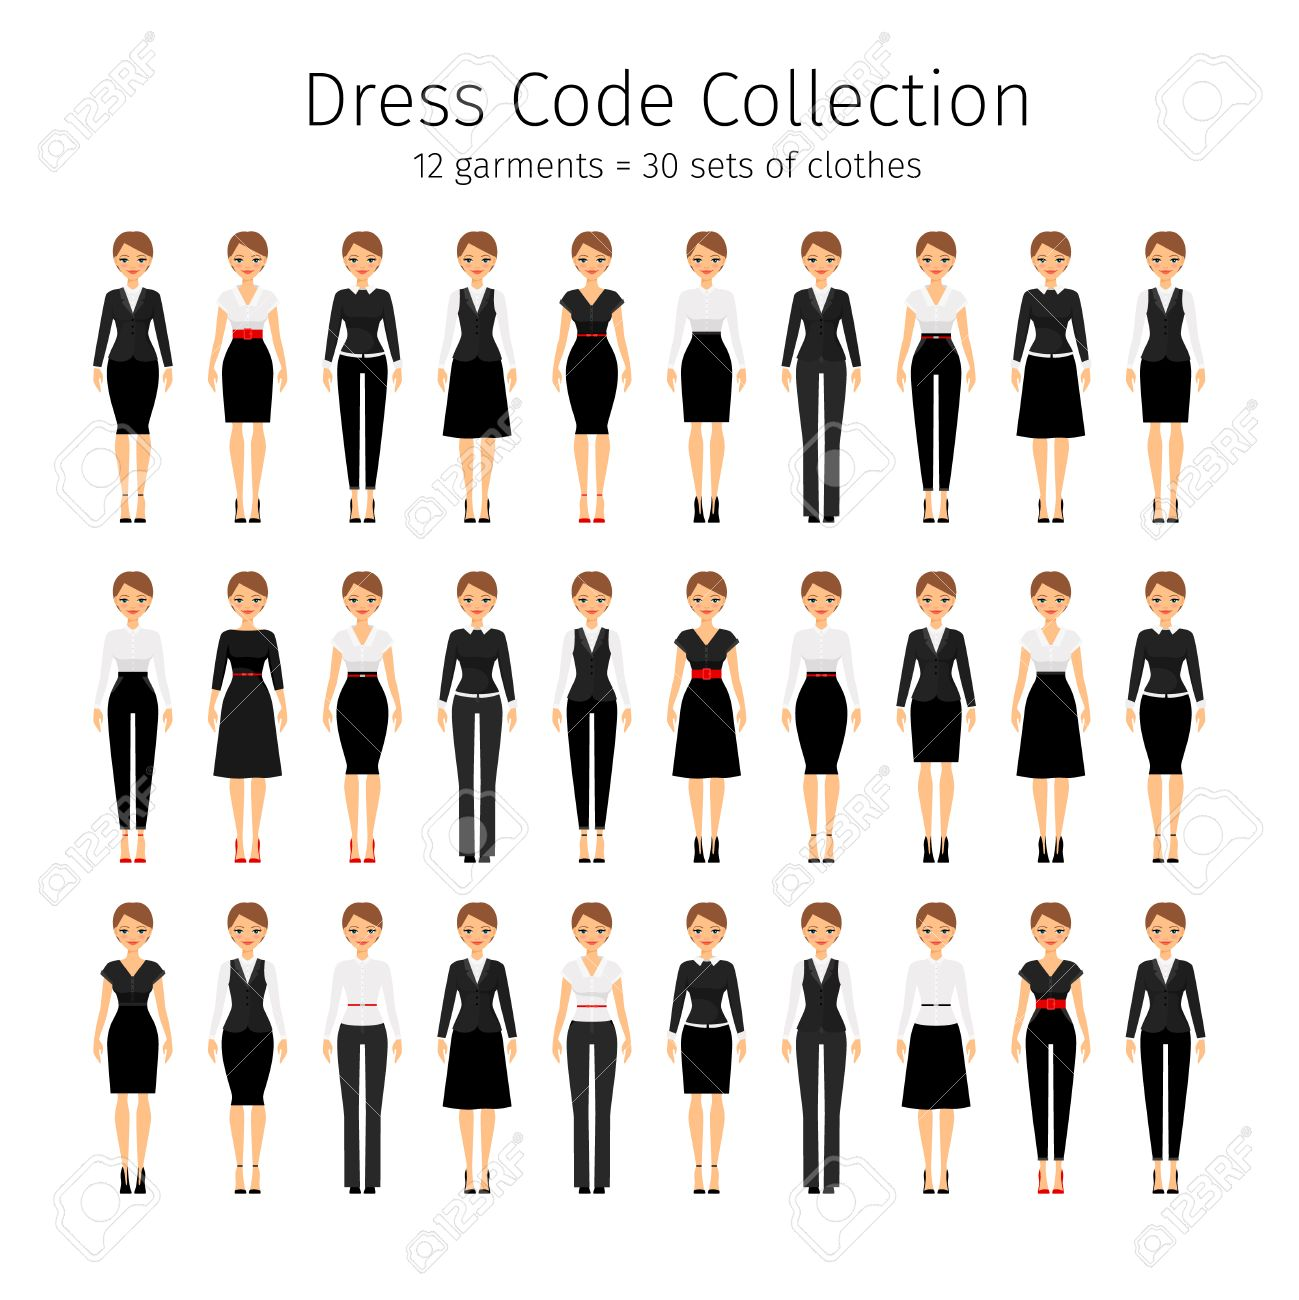 Business Woman Collection Women Dress Code Vector Set Royalty Free